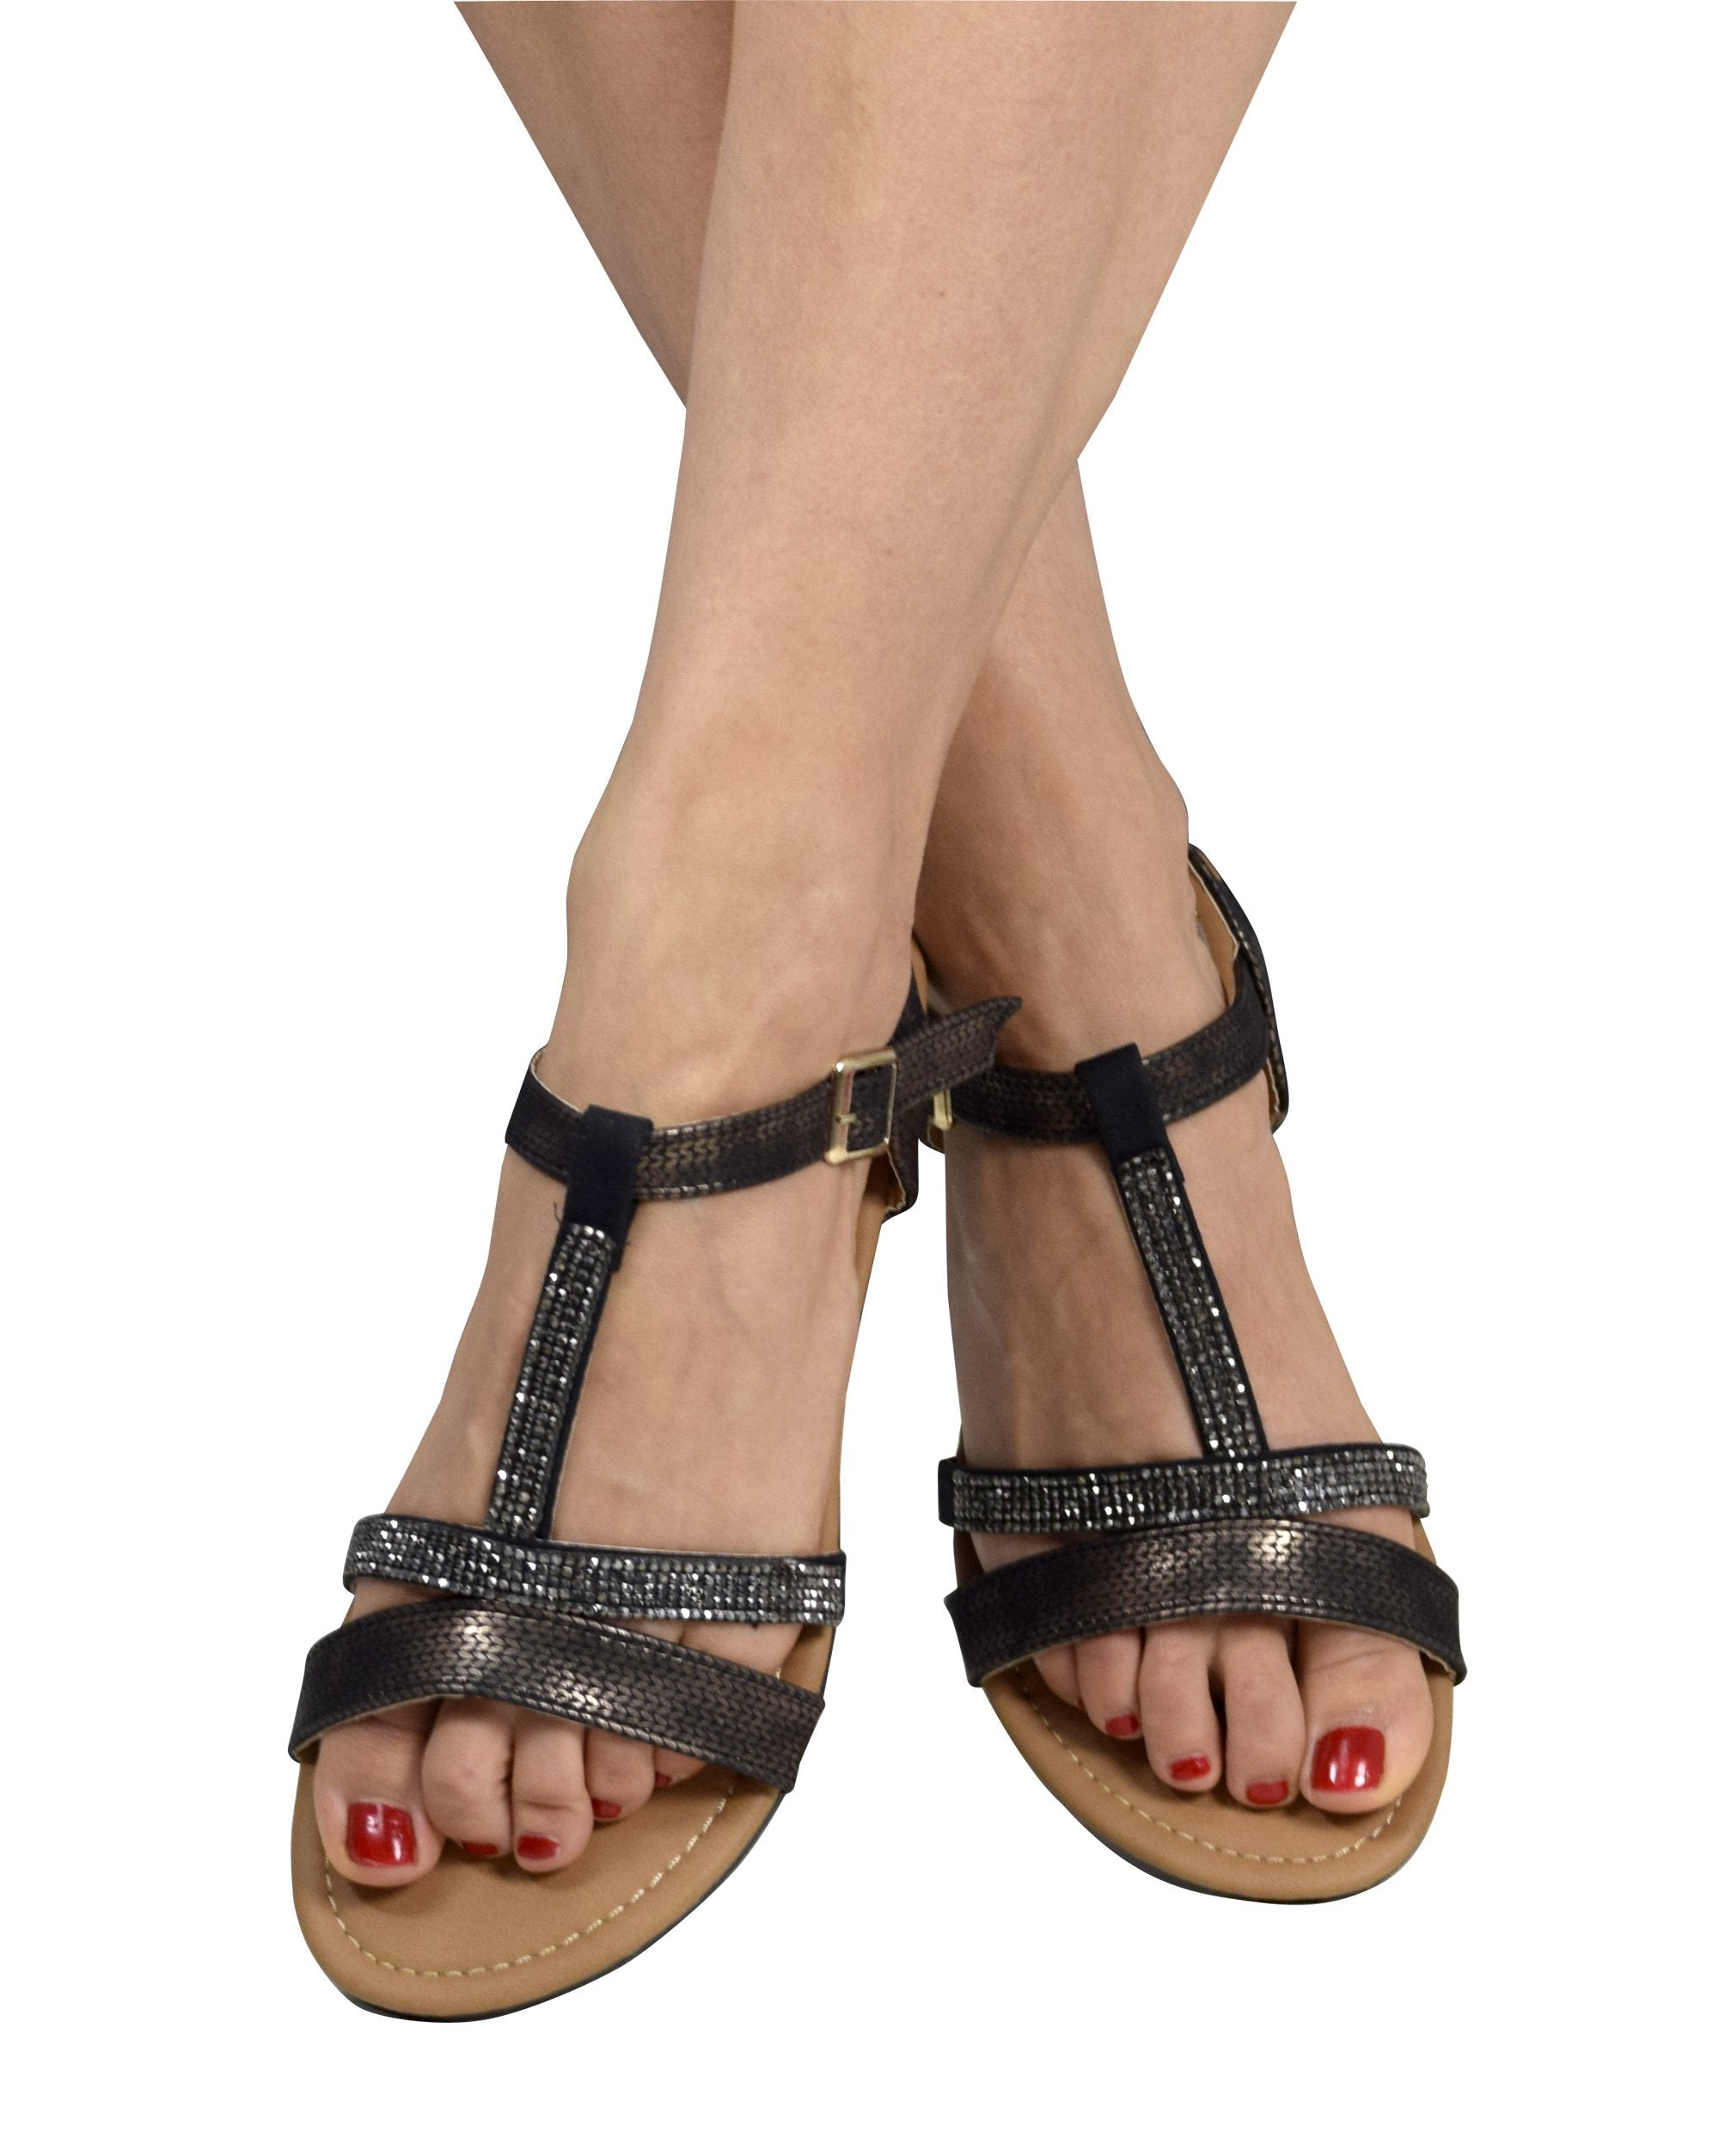 Womens Open Toe Strappy Ankle Buckle Gladiator